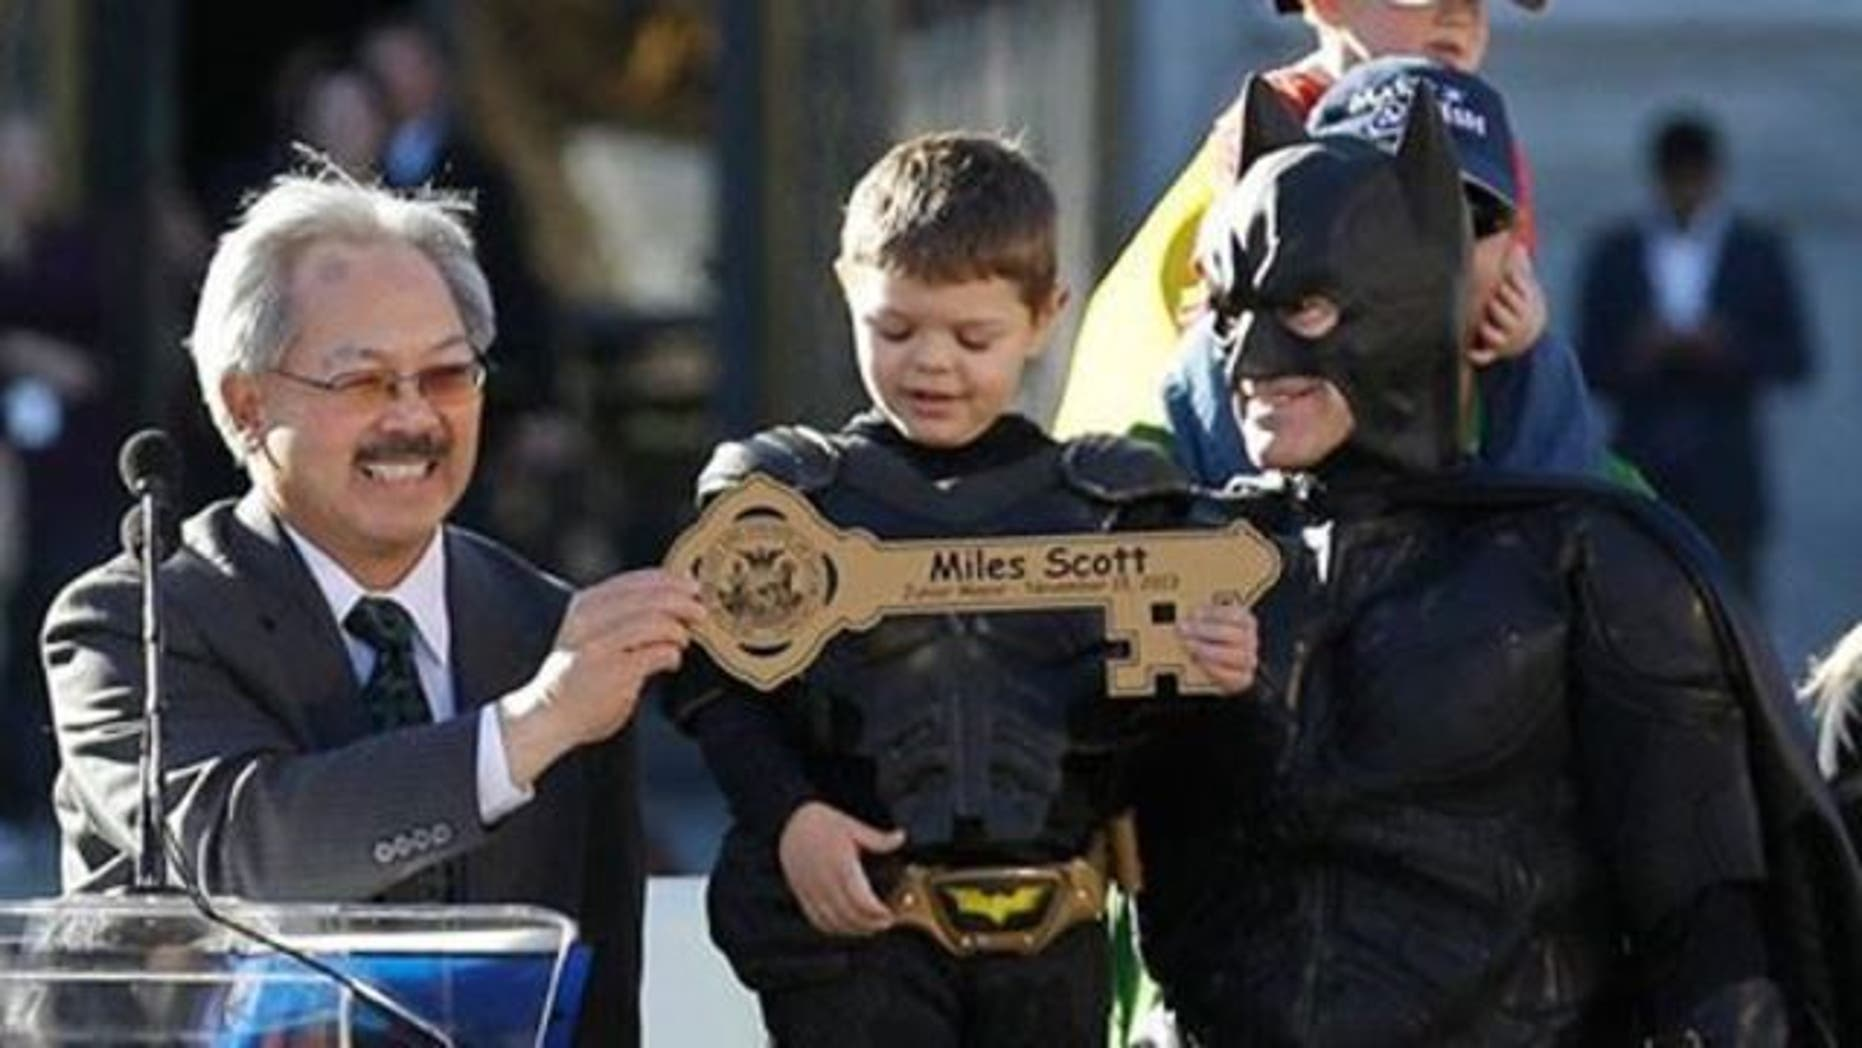 Make-A-Wish turned him into 'Batkid' 5 years ago. Here's where he is now!